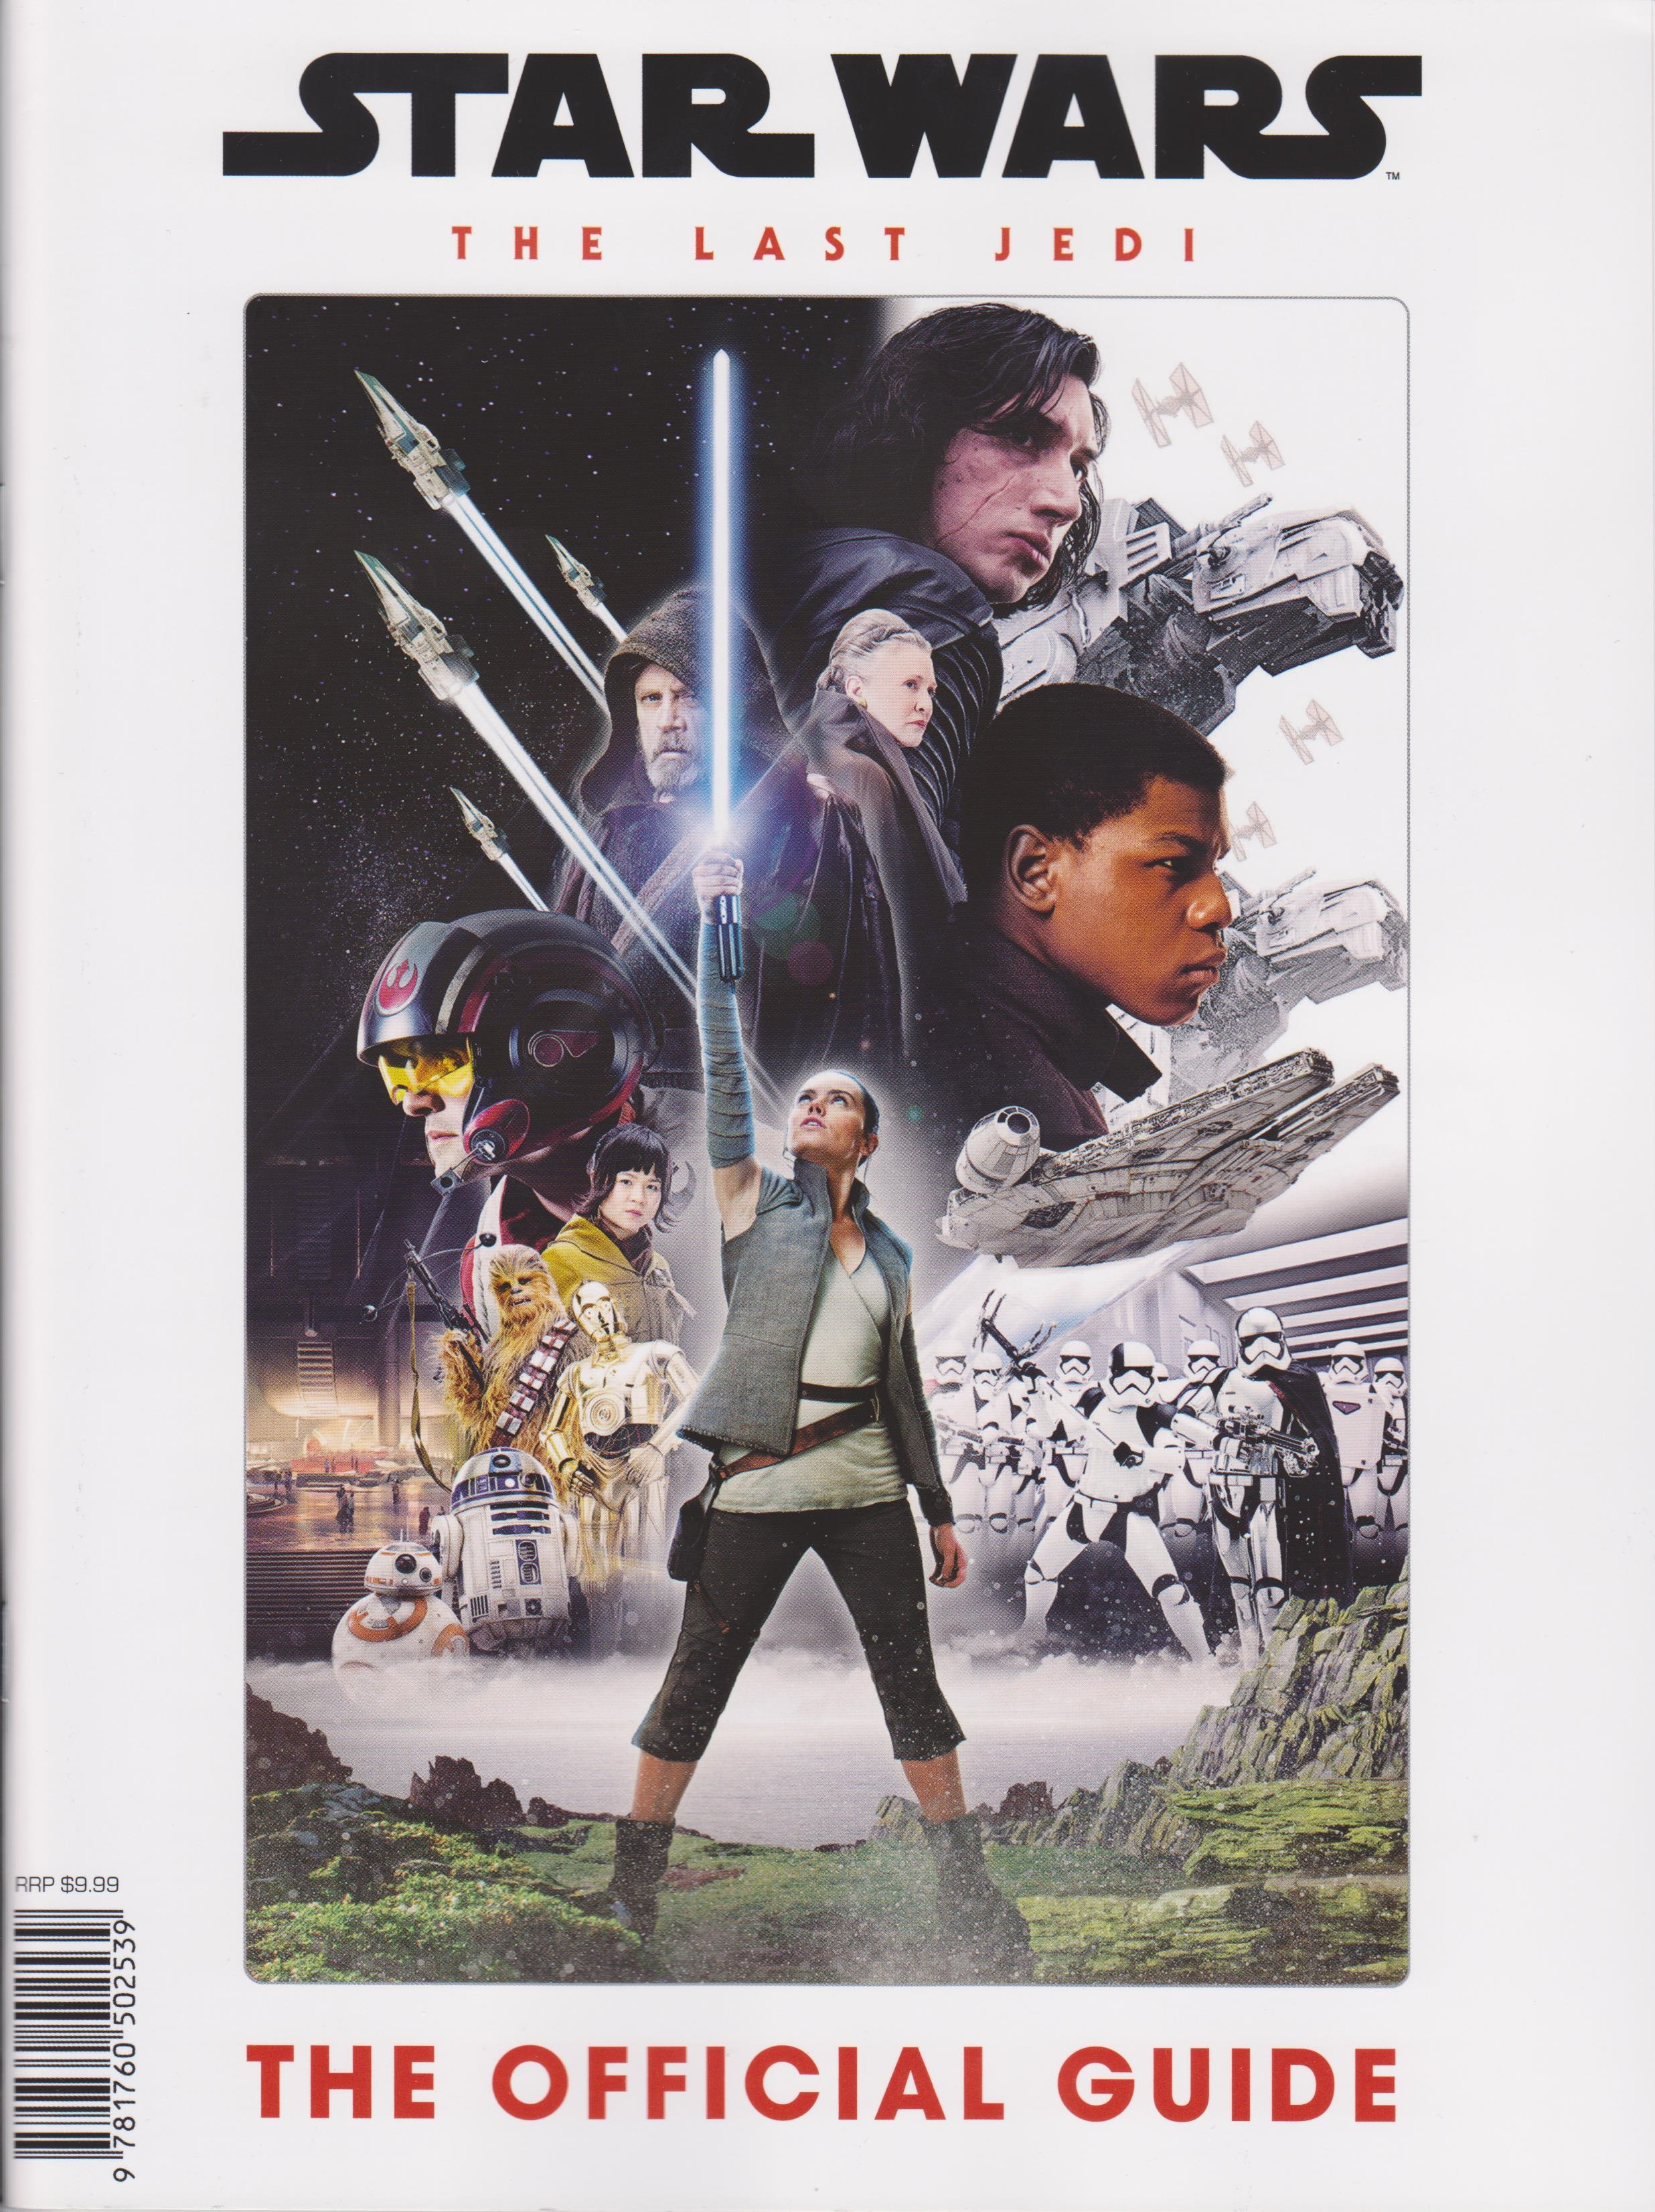 Star Wars: The Last Jedi - The Official Guide